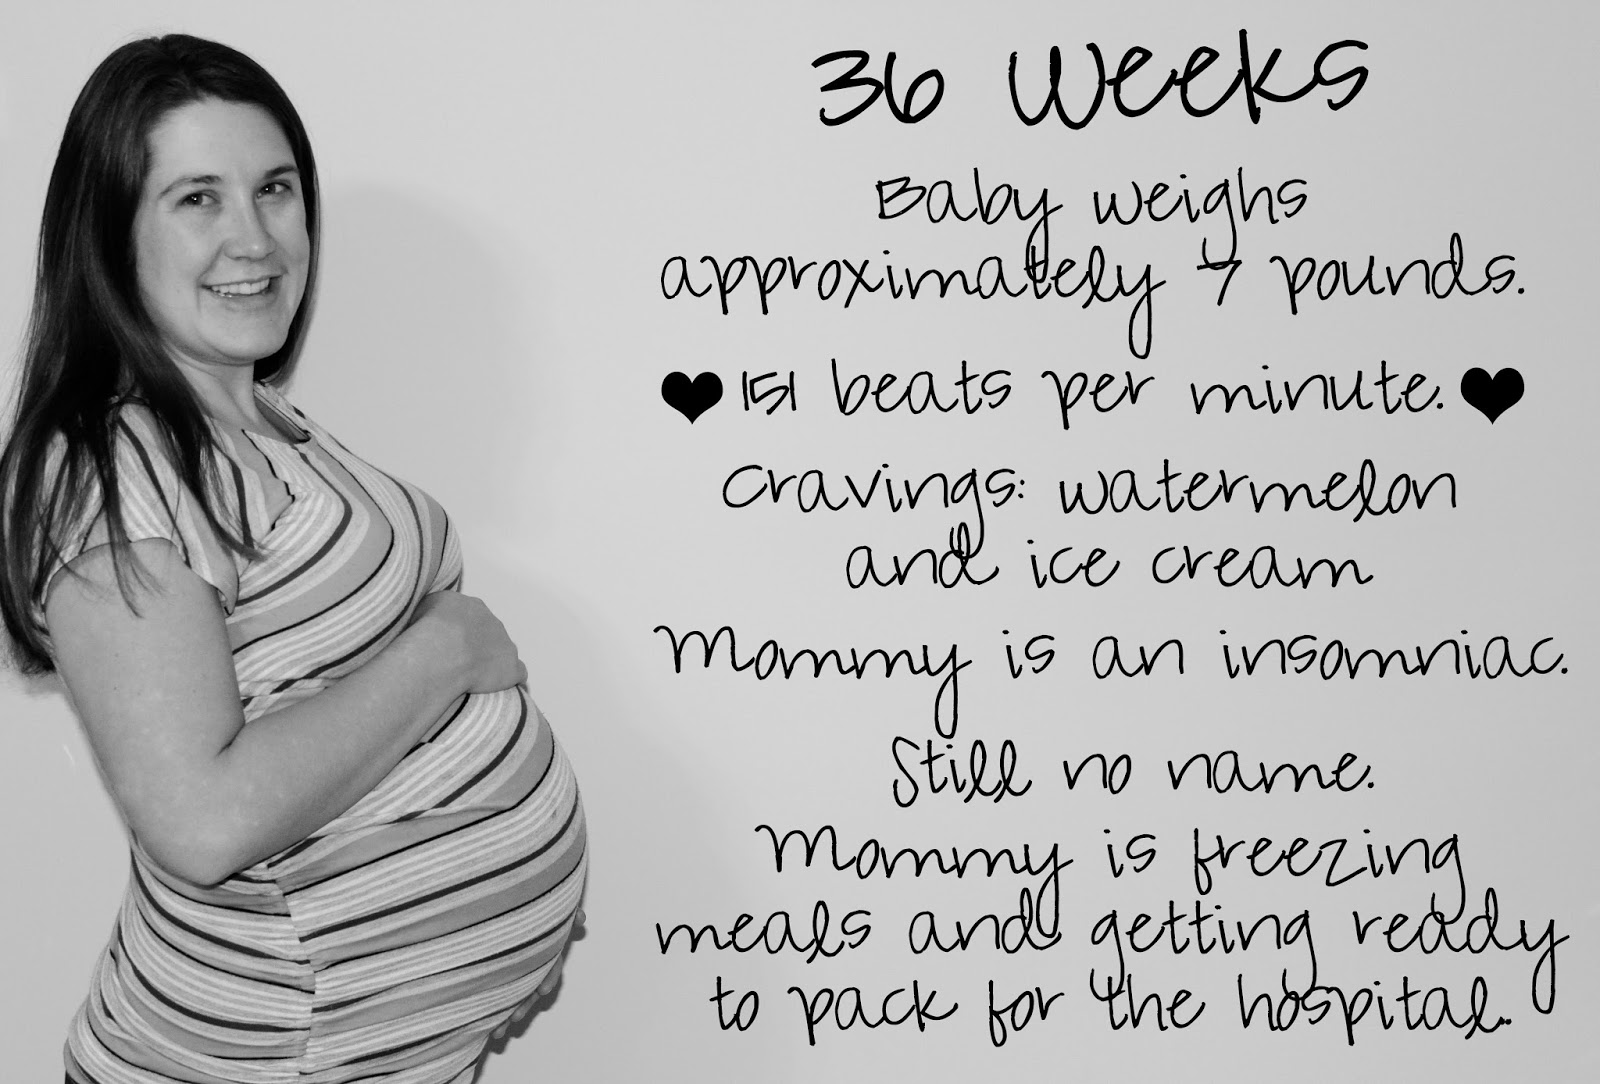 36 weeks pregnant with period-like cramps ALL DAY! The Bump